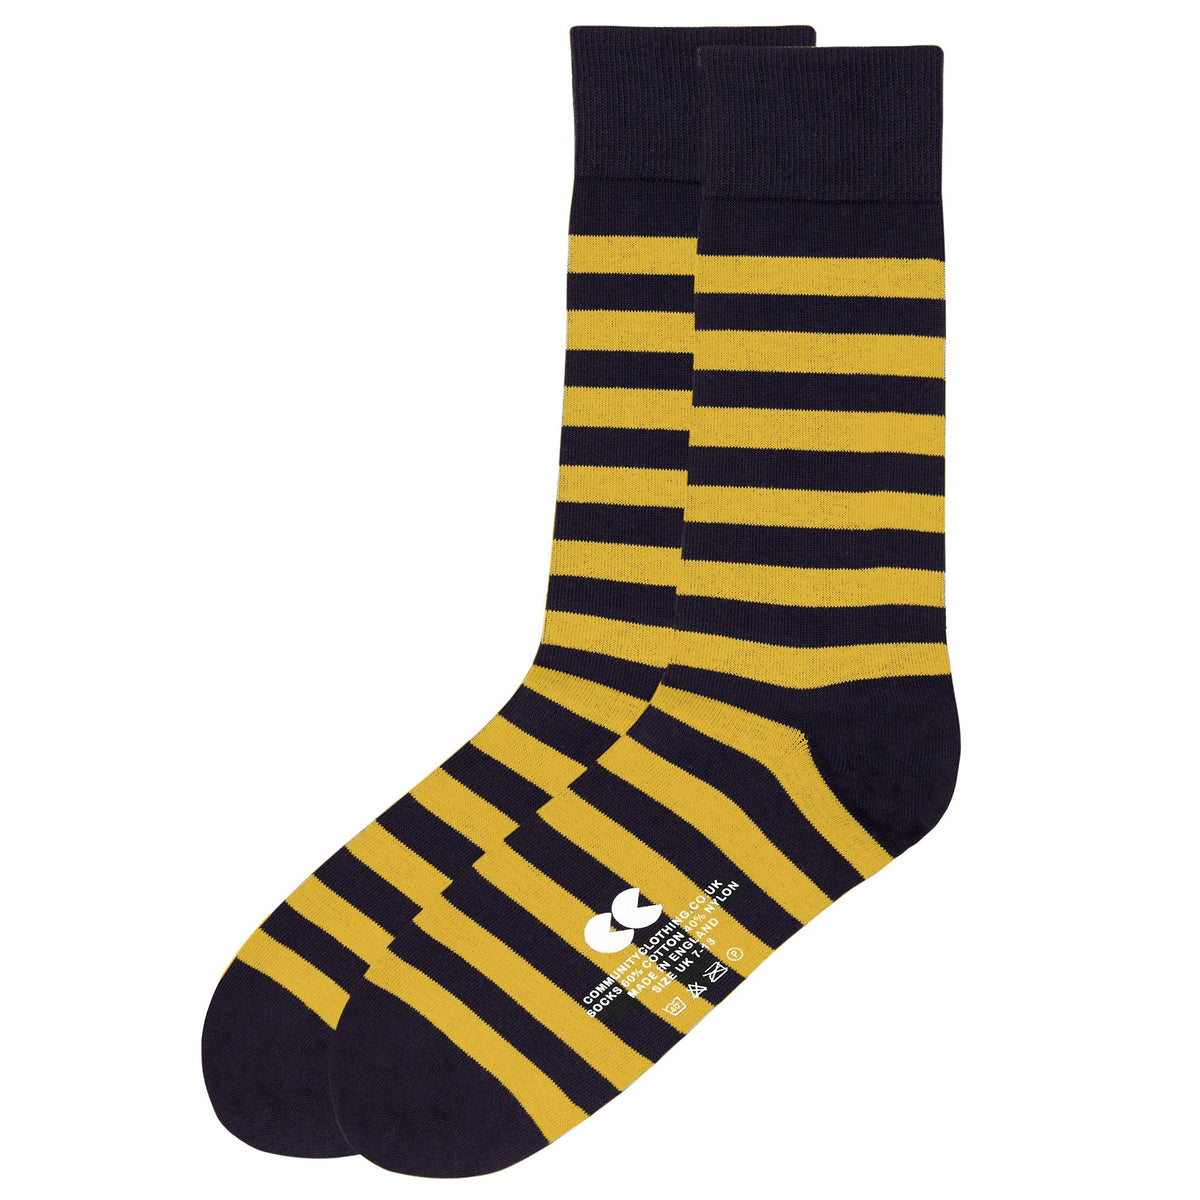 Striped Socks Navy/Yellow - Community Clothing